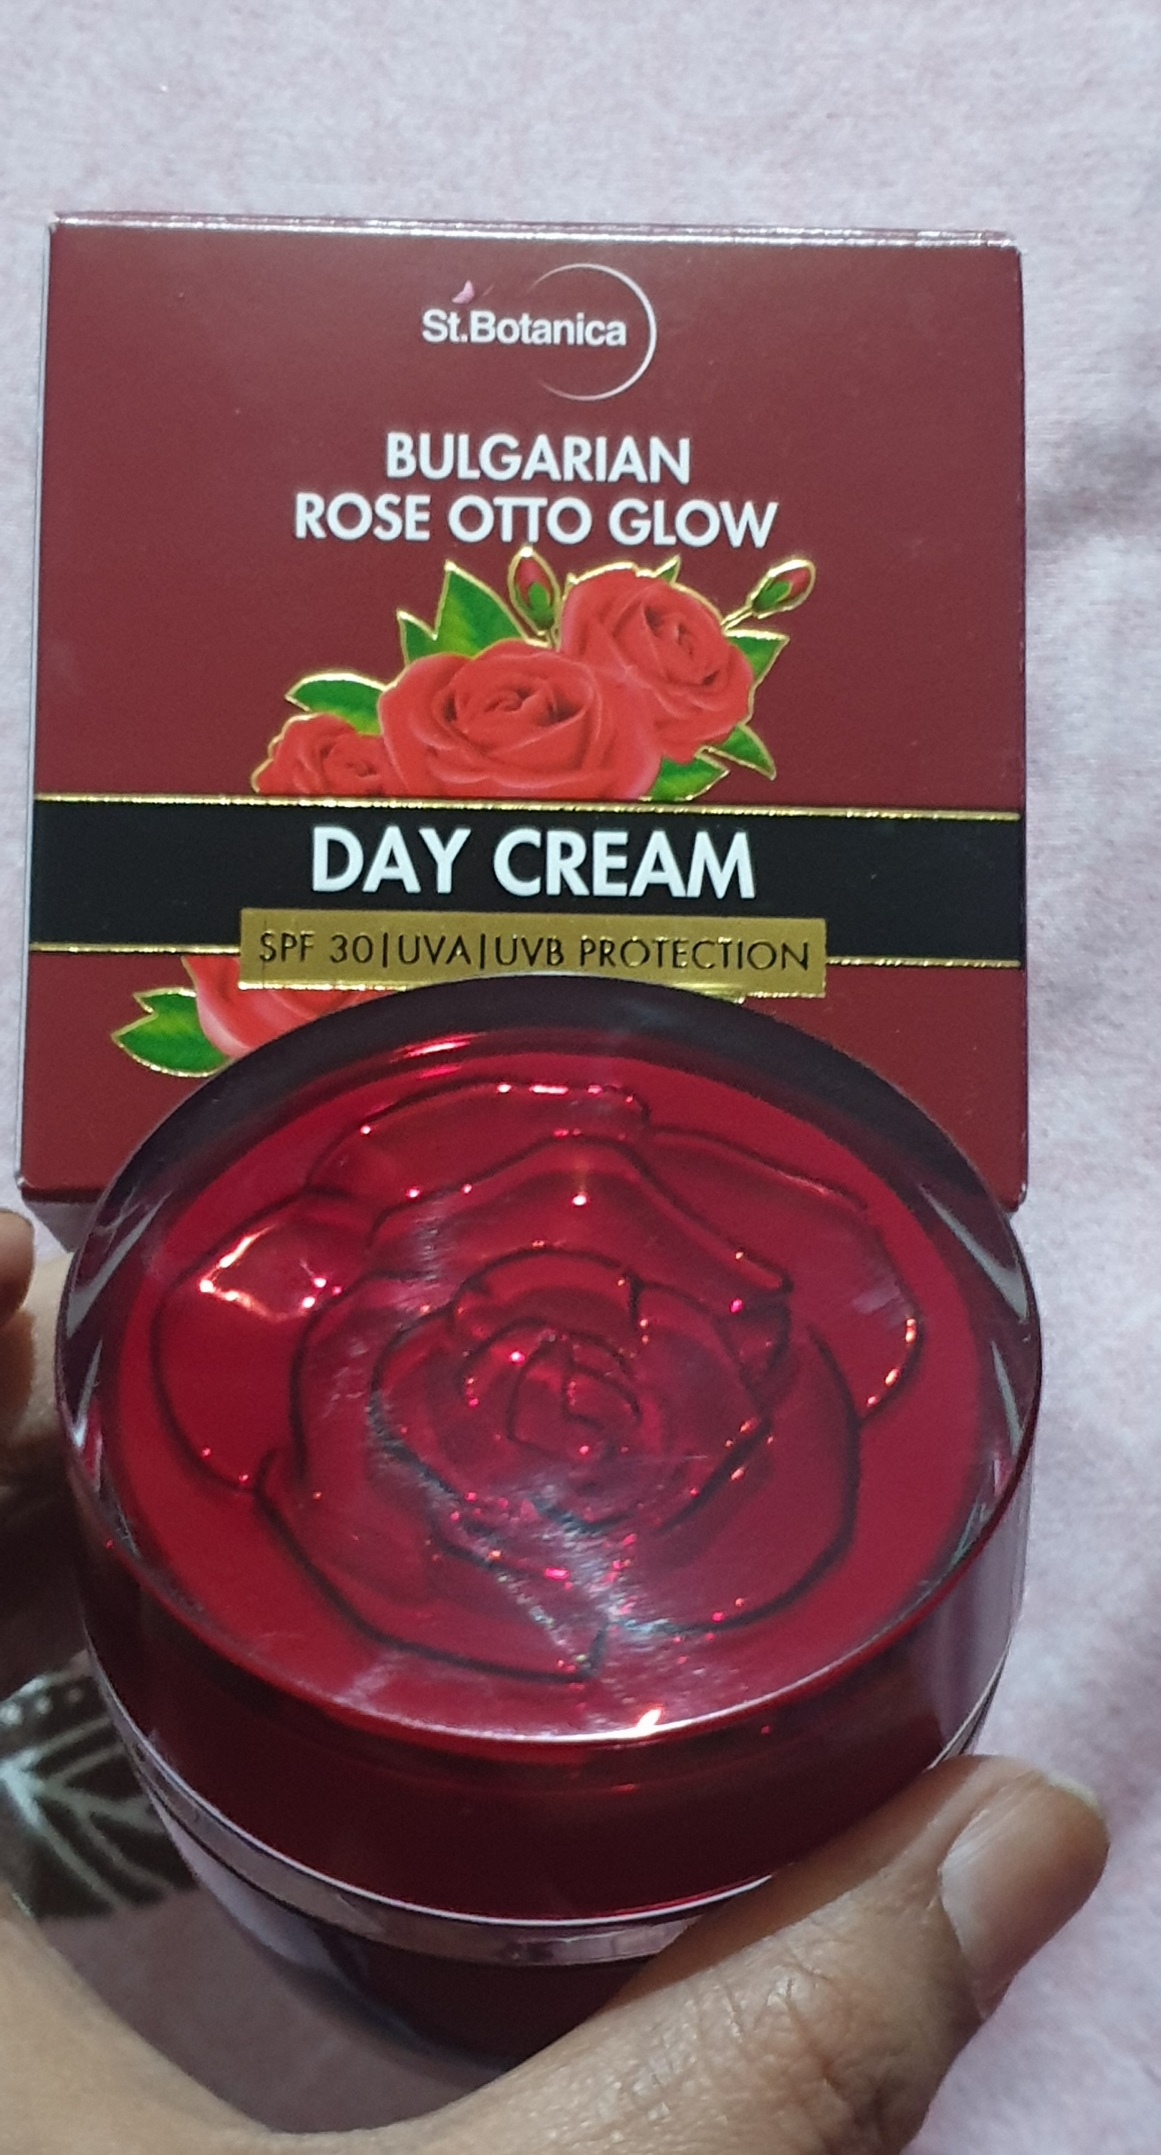 St.Botanica Bulgarian Rose Otto Glow Day Cream-Highly effective in protecting our skin from Sun.-By being_amna-2